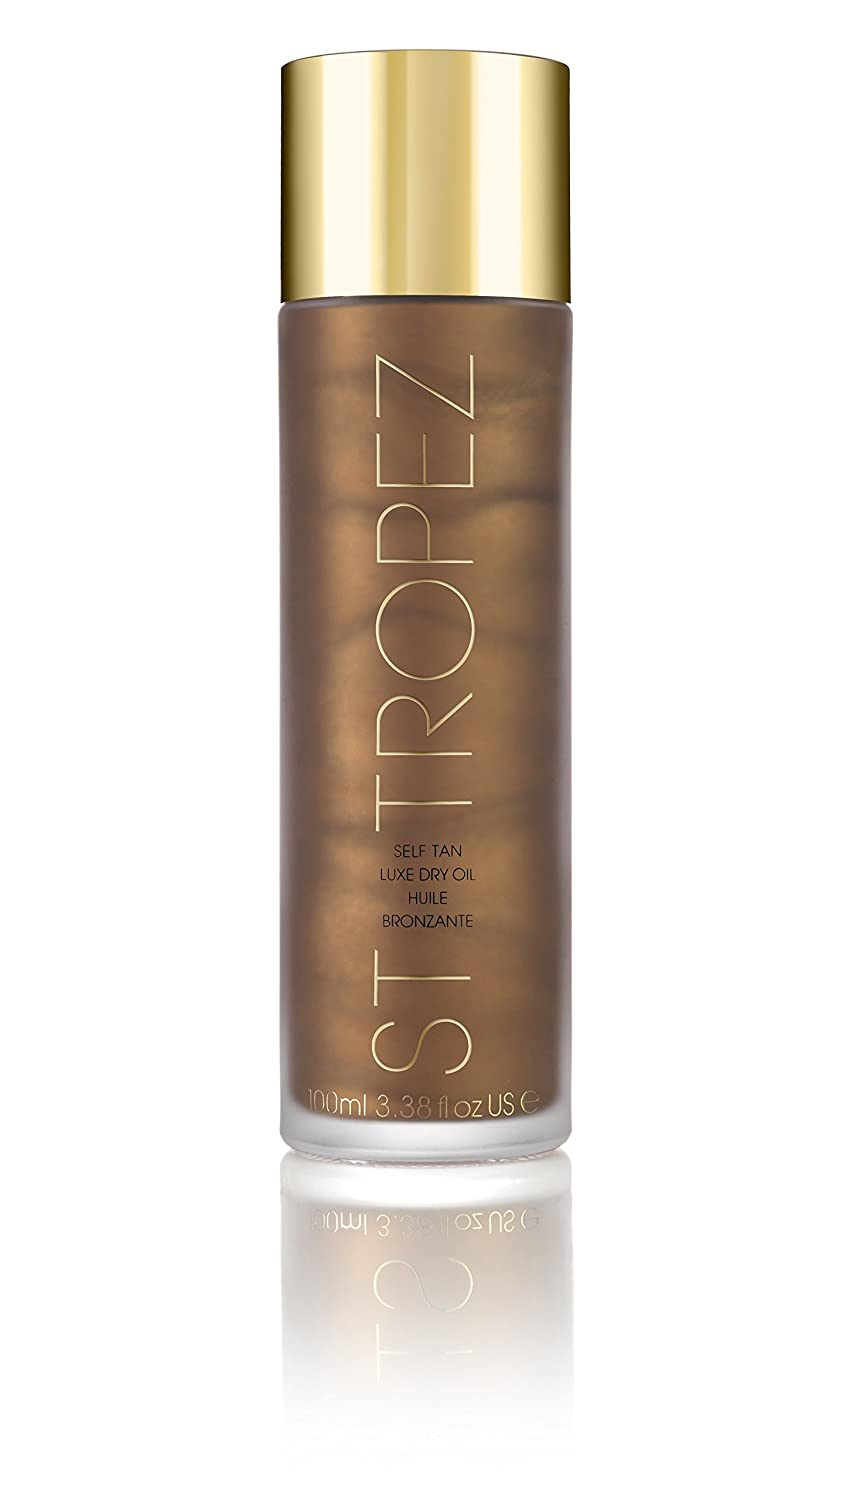 St.Tropez Self Tan Luxe Dry Oil, 100ml St. Tropez 14203